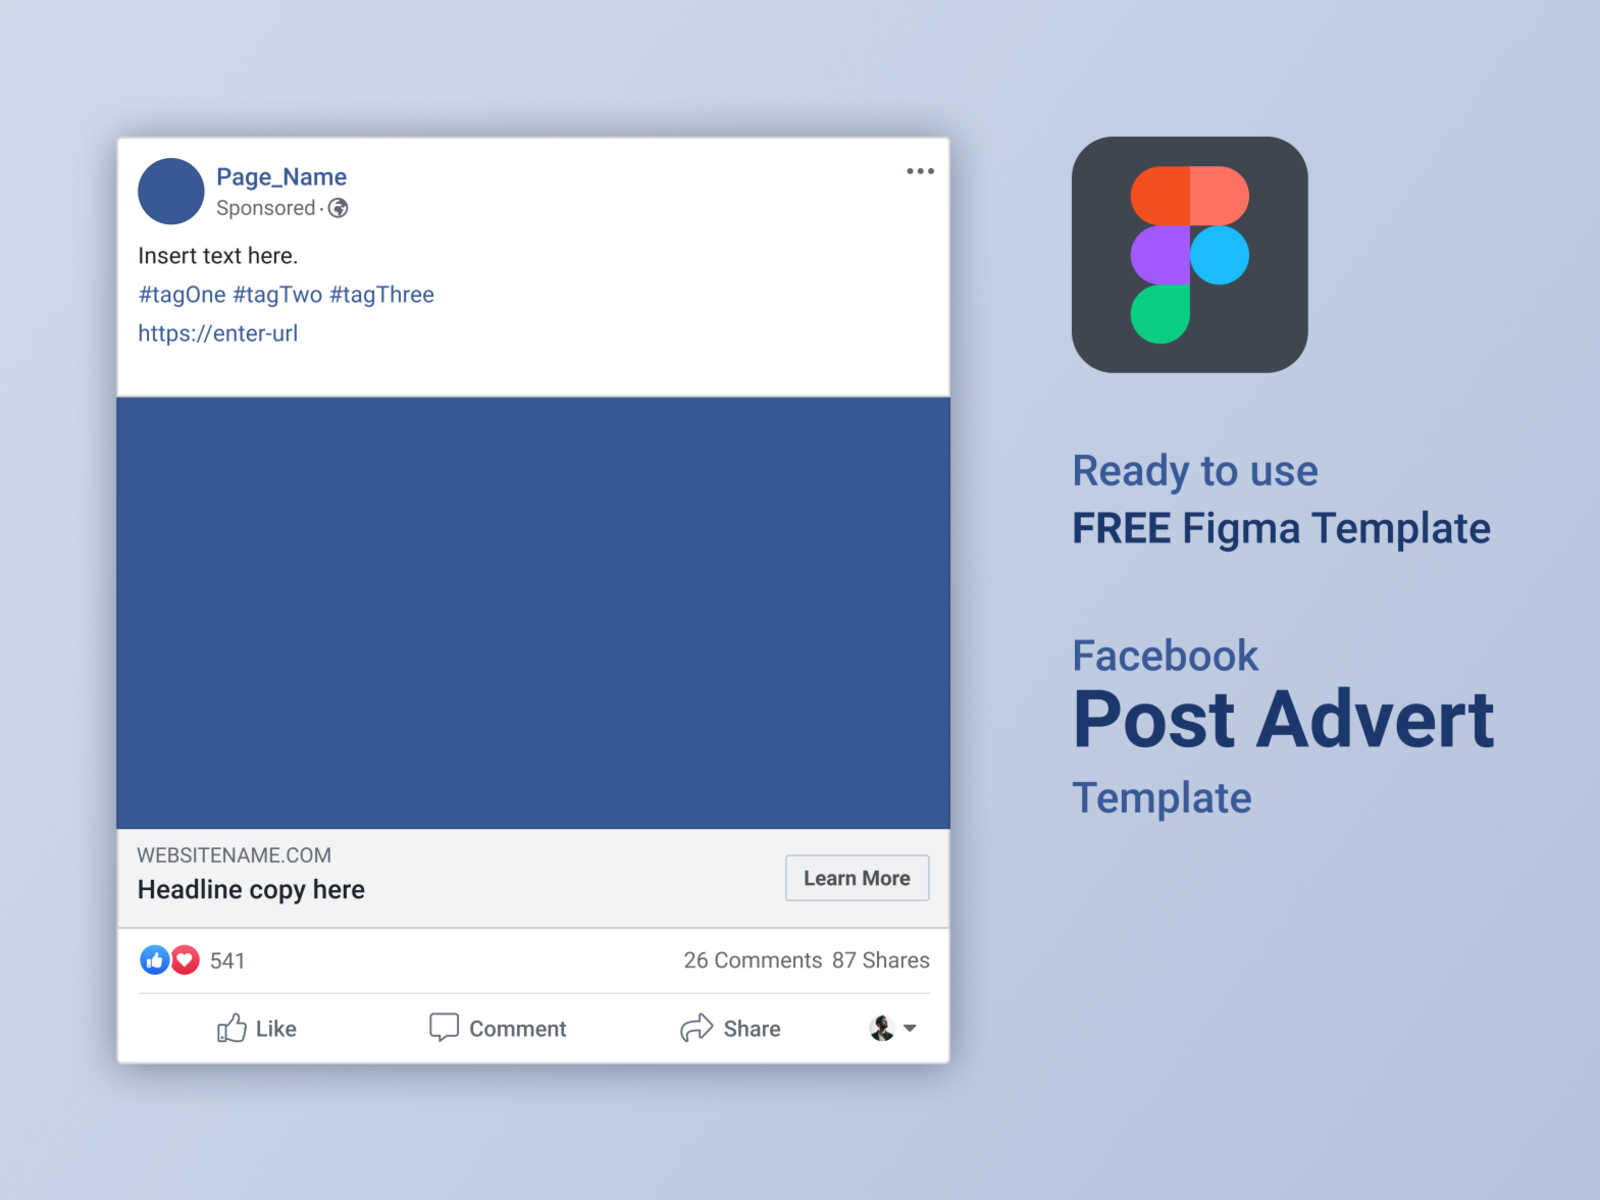 Learn how to develop your advertising proposal, so you can get moving on your advertising project faster and maximize revenue from it. Free Figma Facebook Advert Post Template By Ernest Gerber On Dribbble